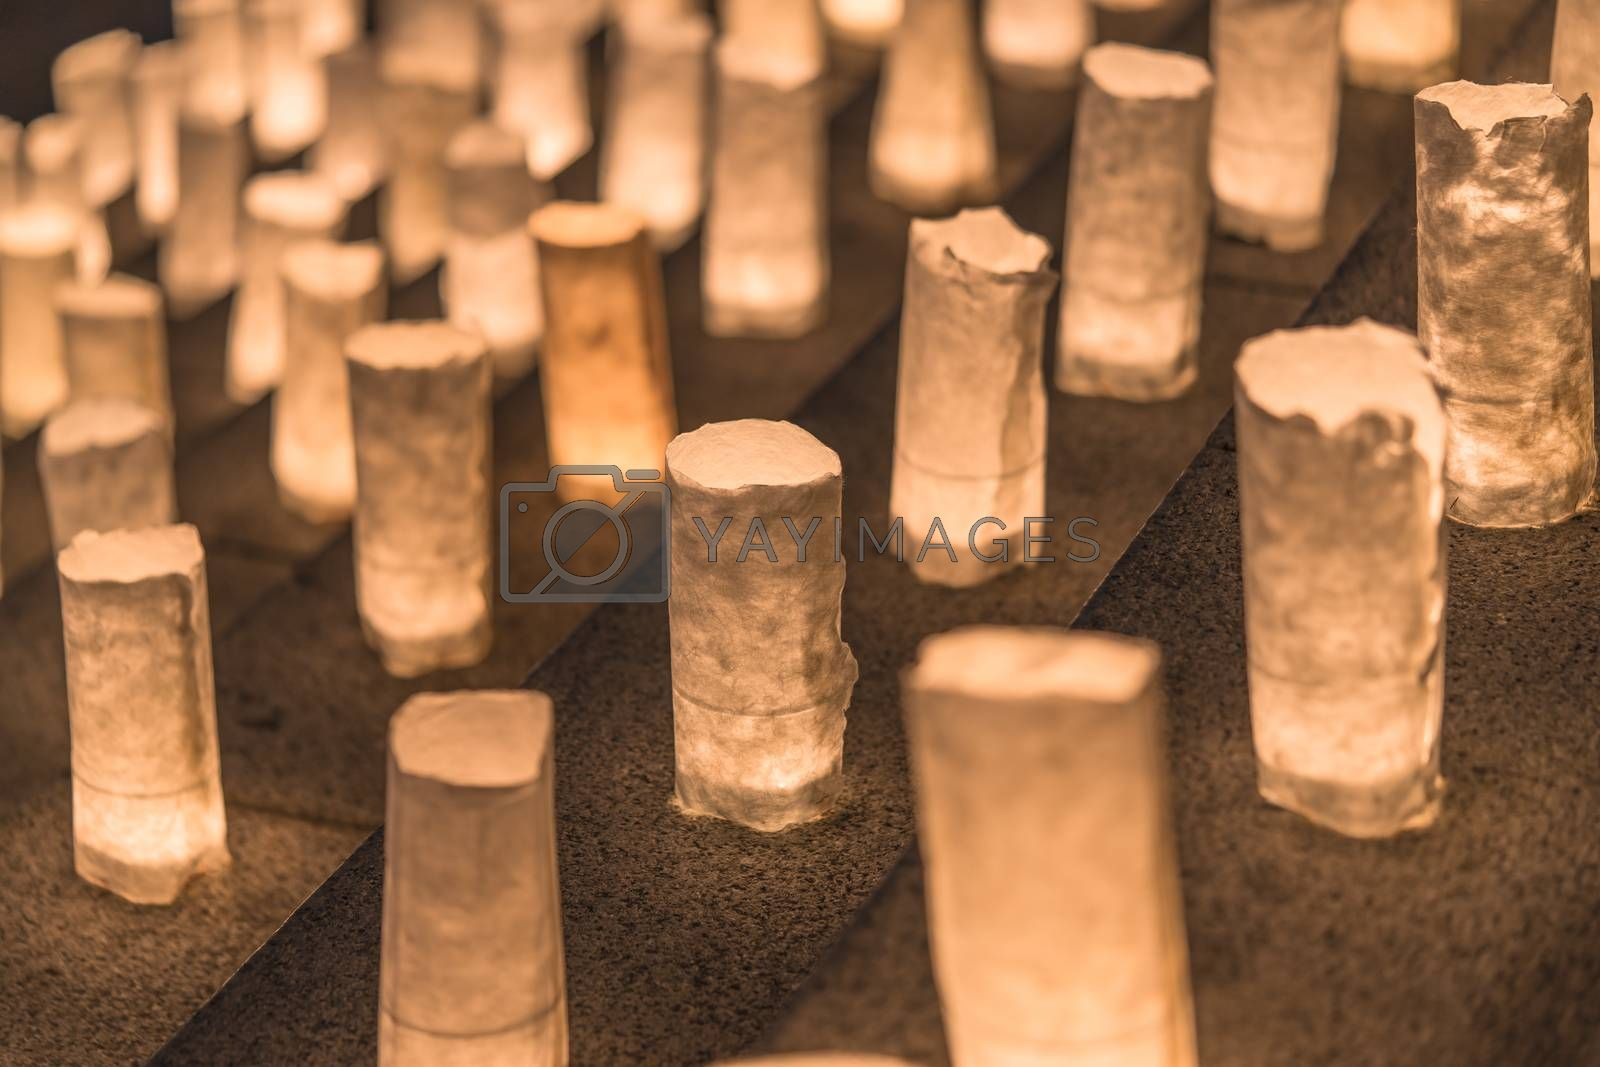 Handmade japanese paper washi lanterns illuminating the stone steps of the Zojoji temple near the Tokyo Tower during Tanabata Day on July 7th.